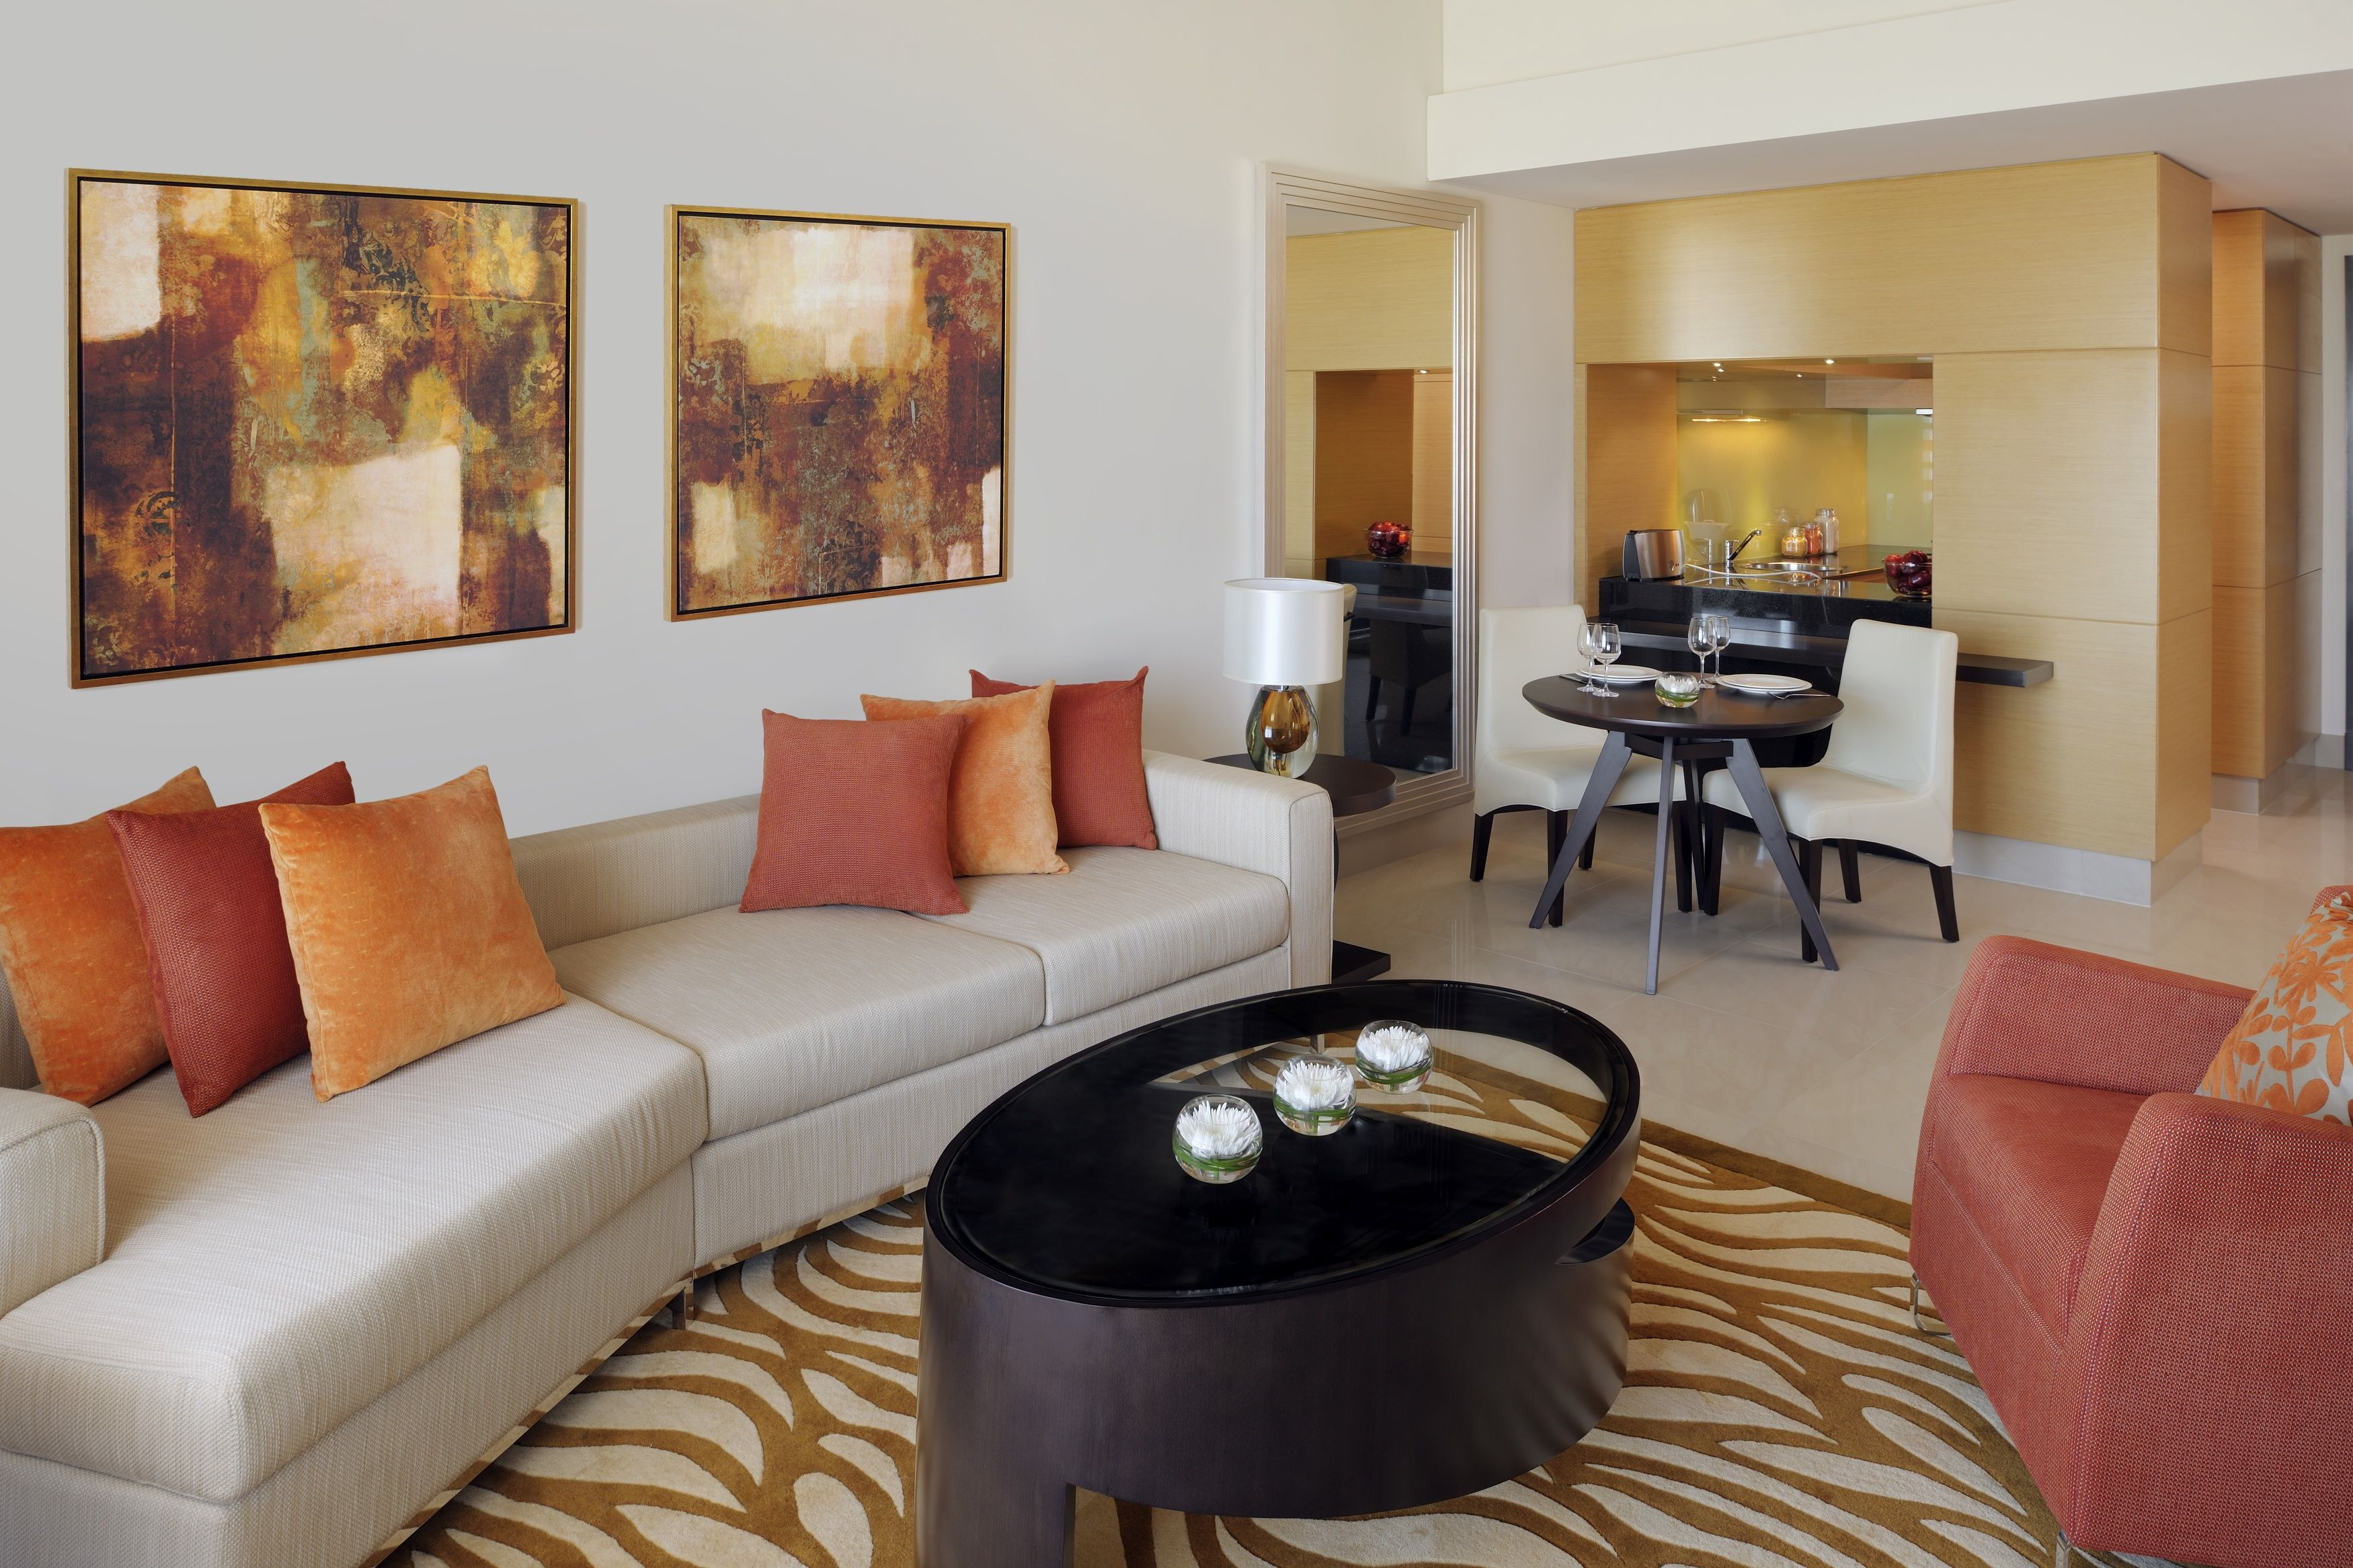 a334f3d431a712ba141bf2d2ec4ecd55 - Gardens Apartments Fully Furnished And Serviced Apartments